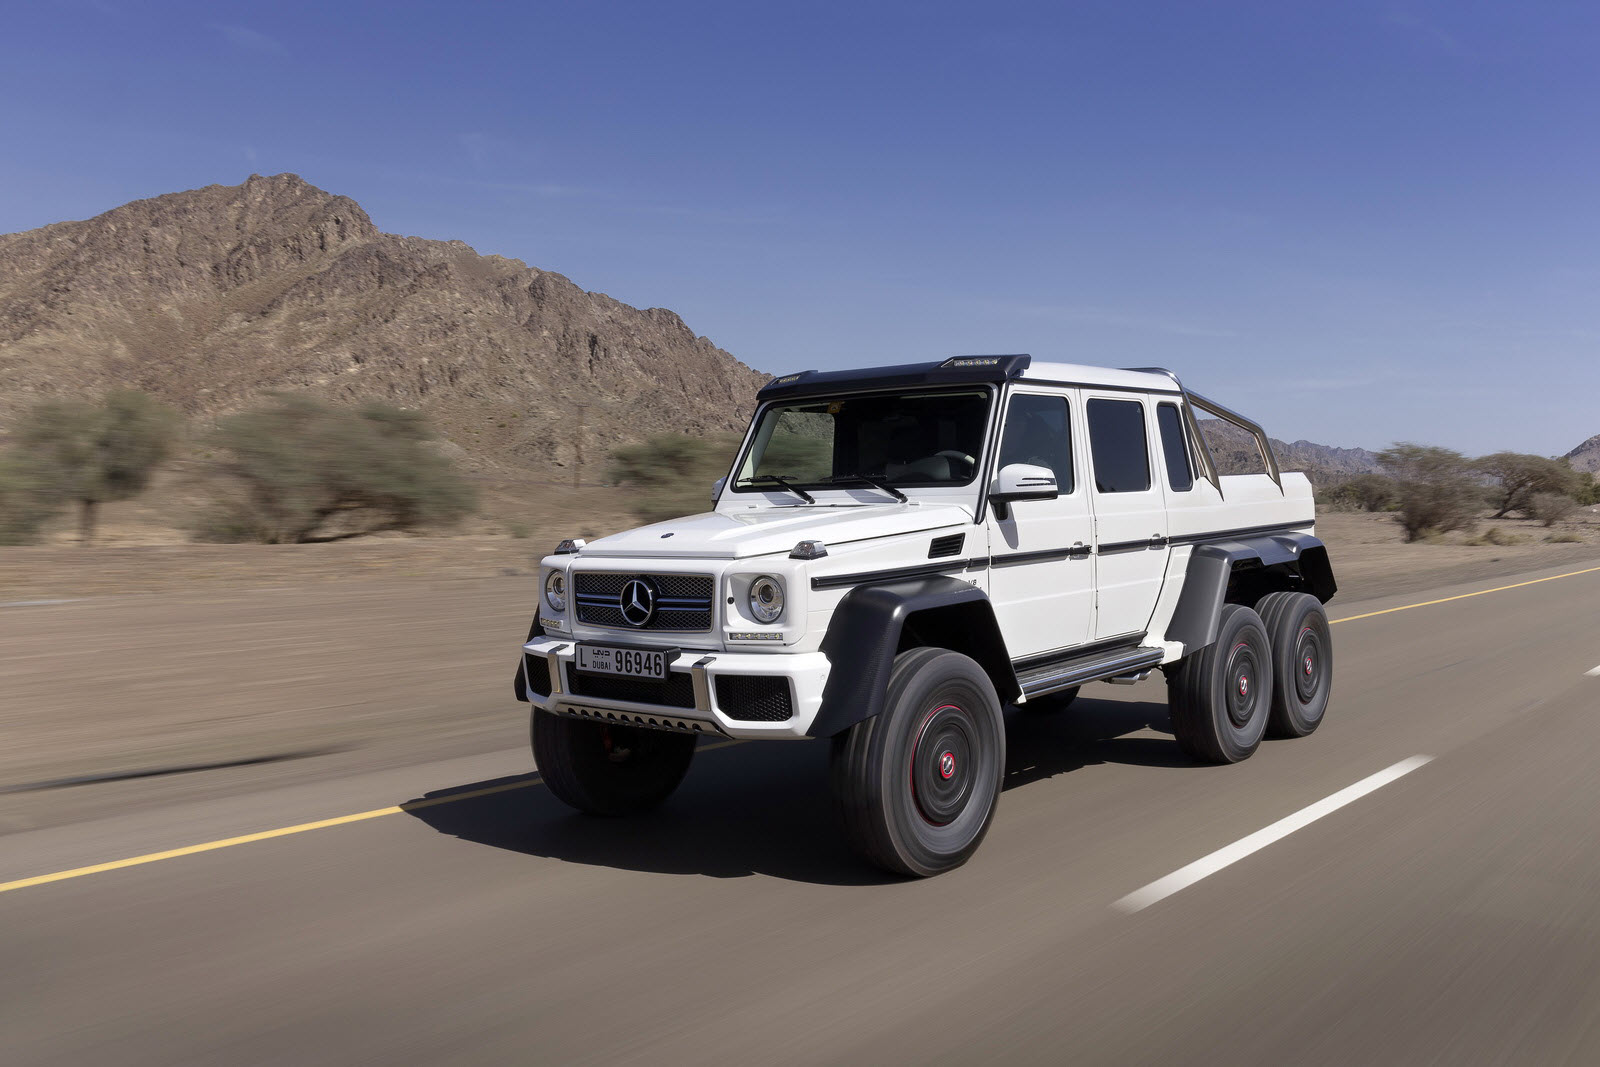 mercedes benz g 63 amg 6x6 taking the desert by storm. Black Bedroom Furniture Sets. Home Design Ideas